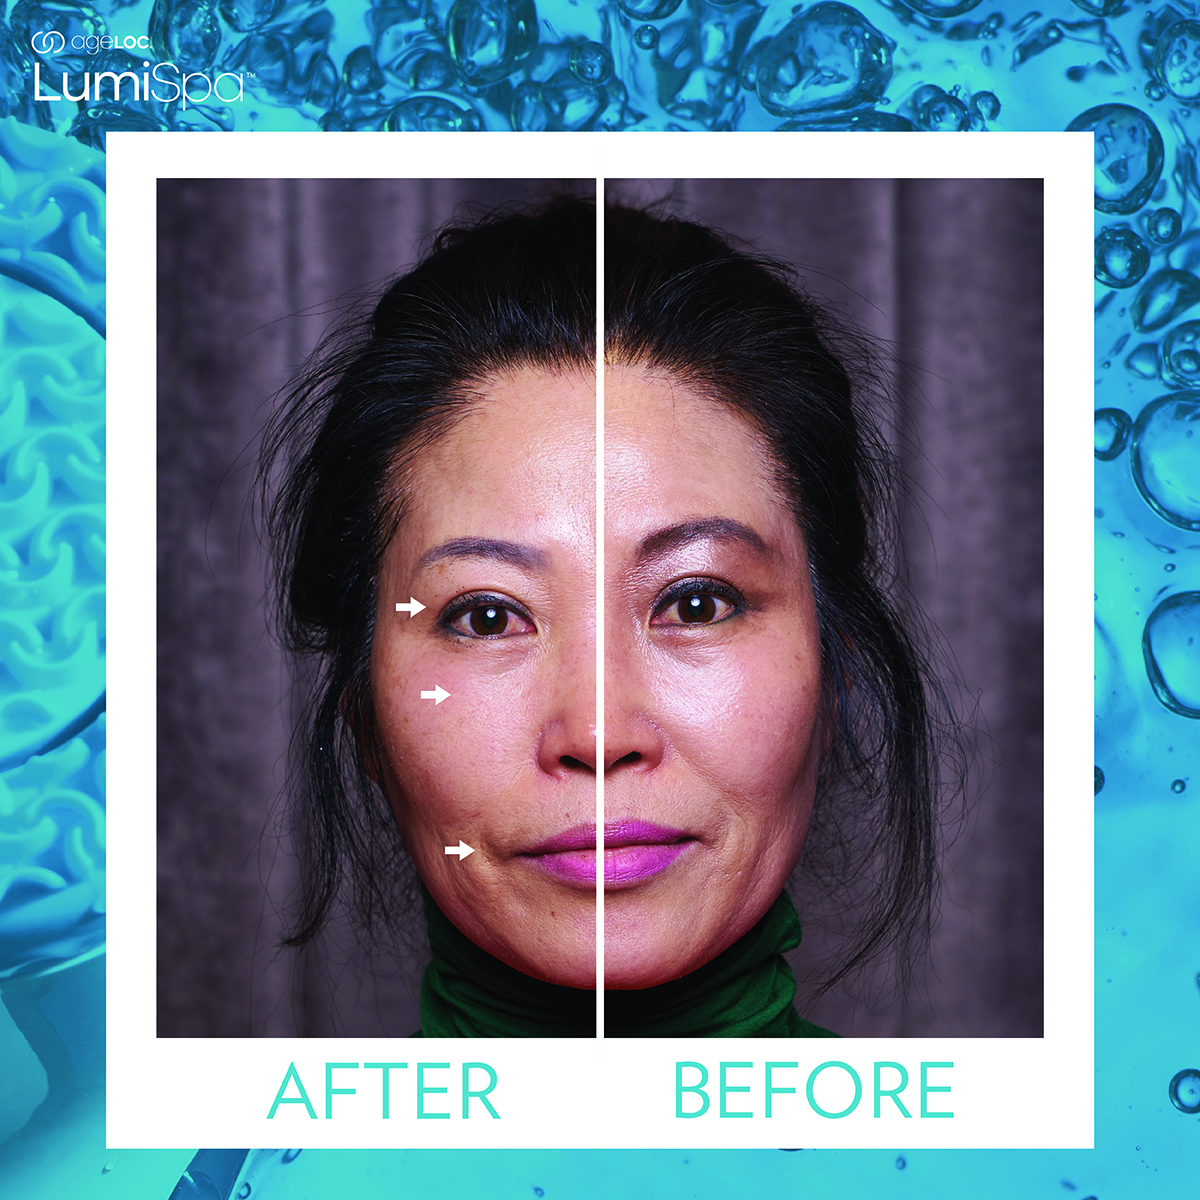 Results after 2 minutes use with the Lumispa